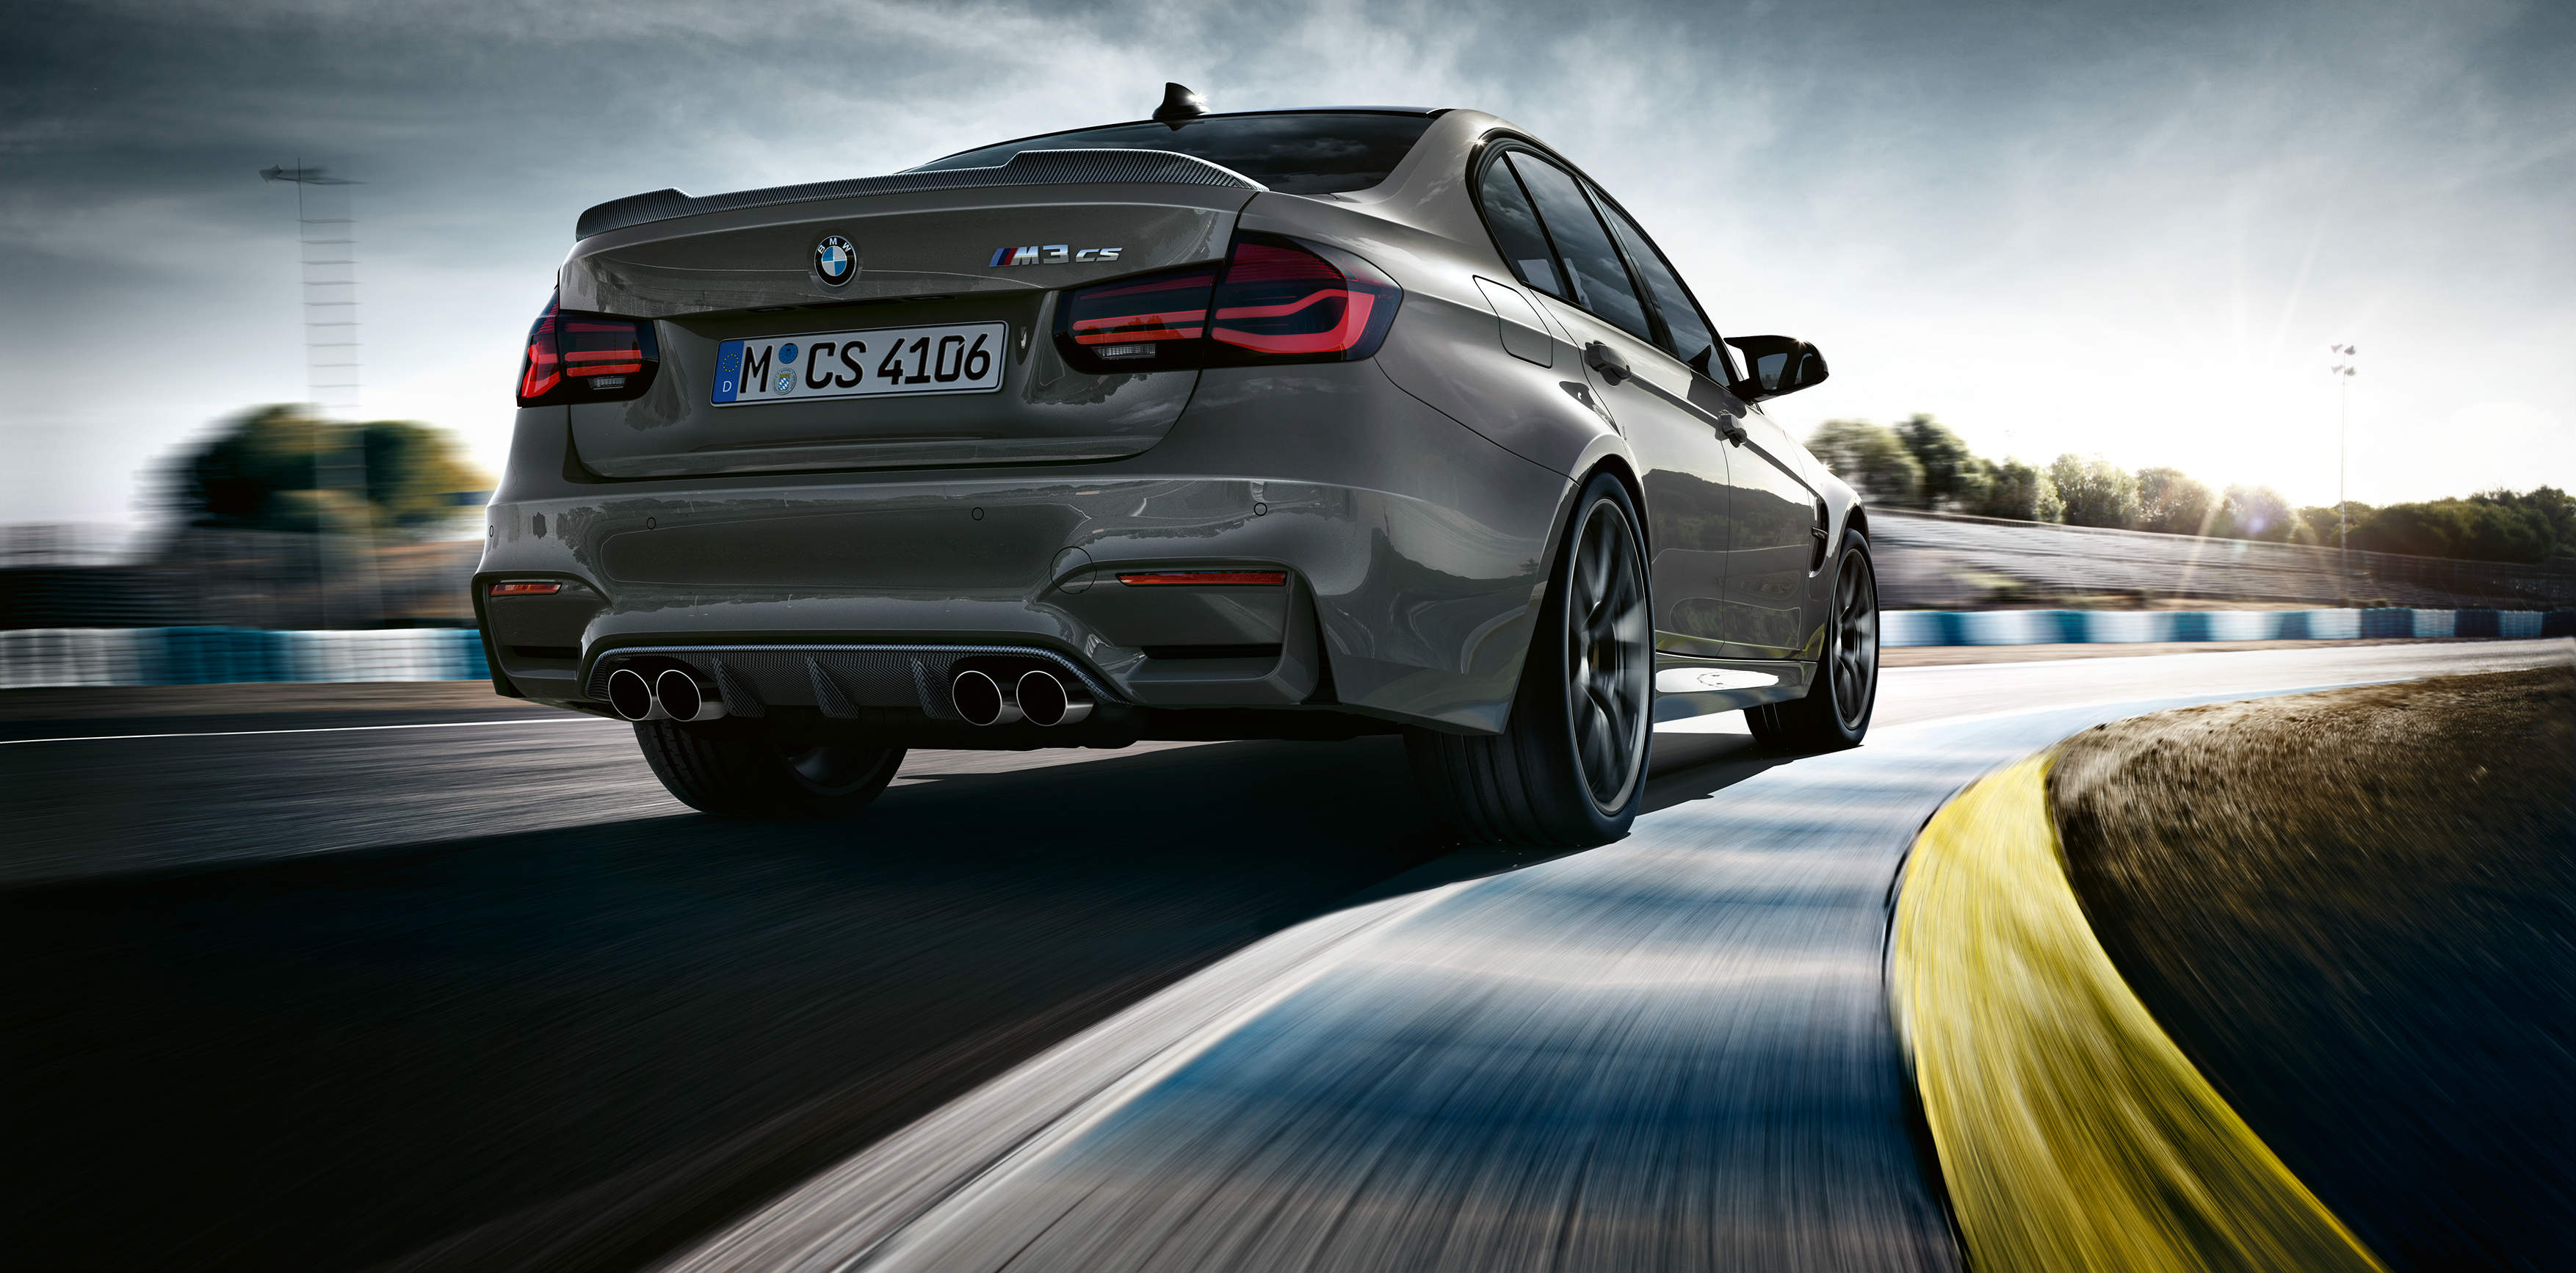 Bmw M3 Cs Is A Limited Run Special Edition Model Torque